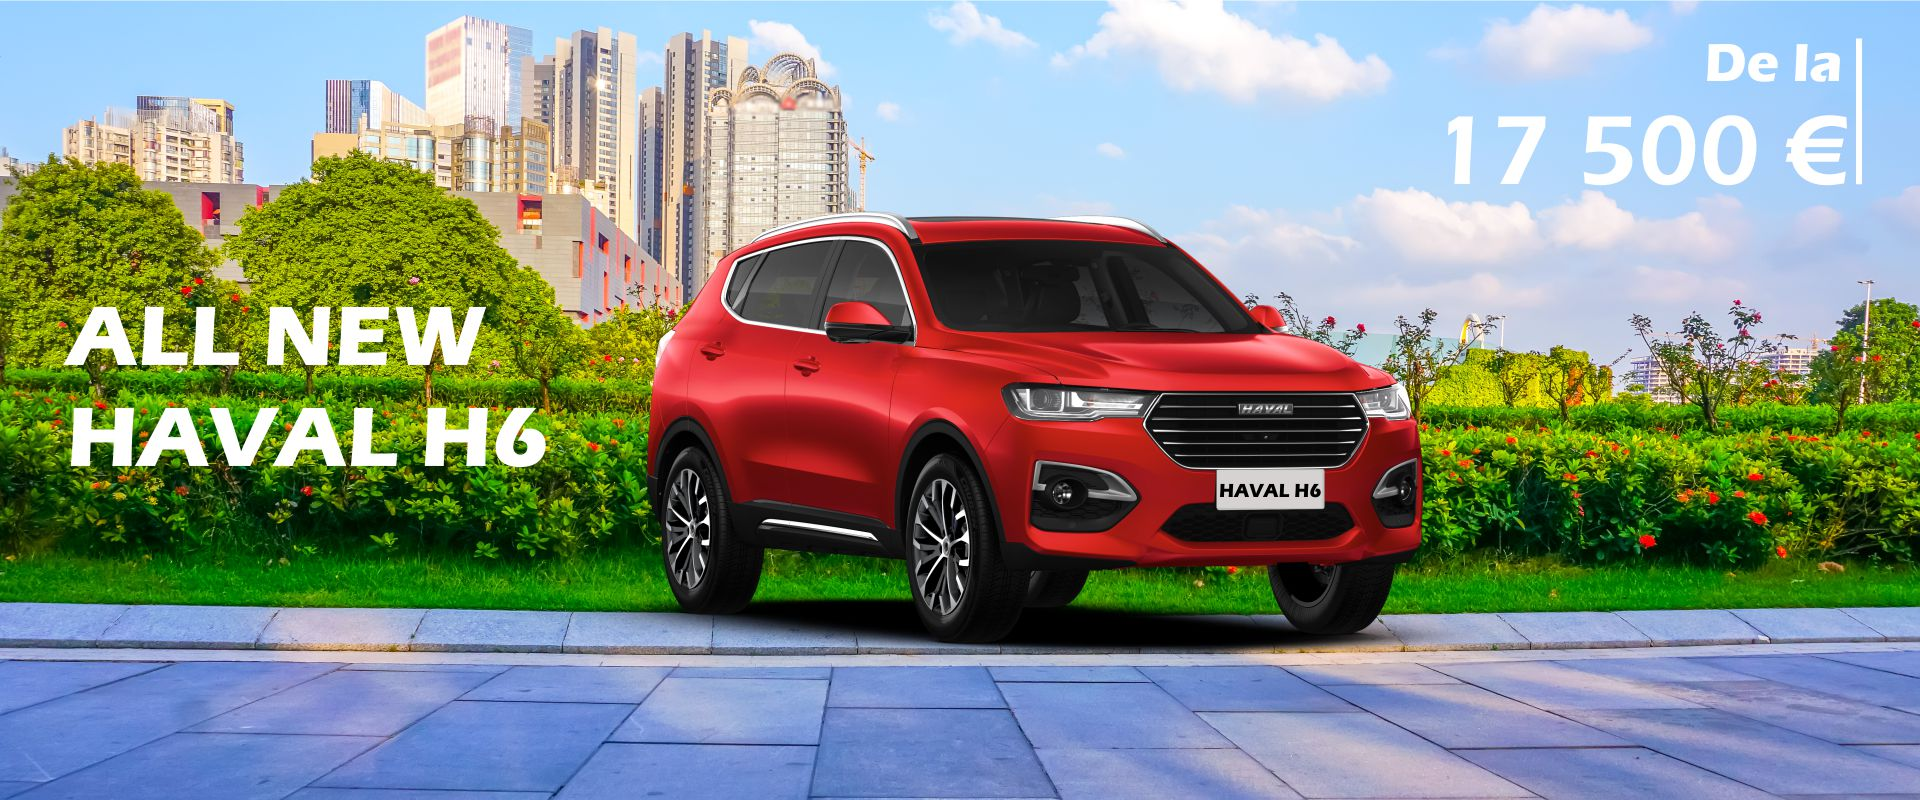 ALL NEW HAVAL H6